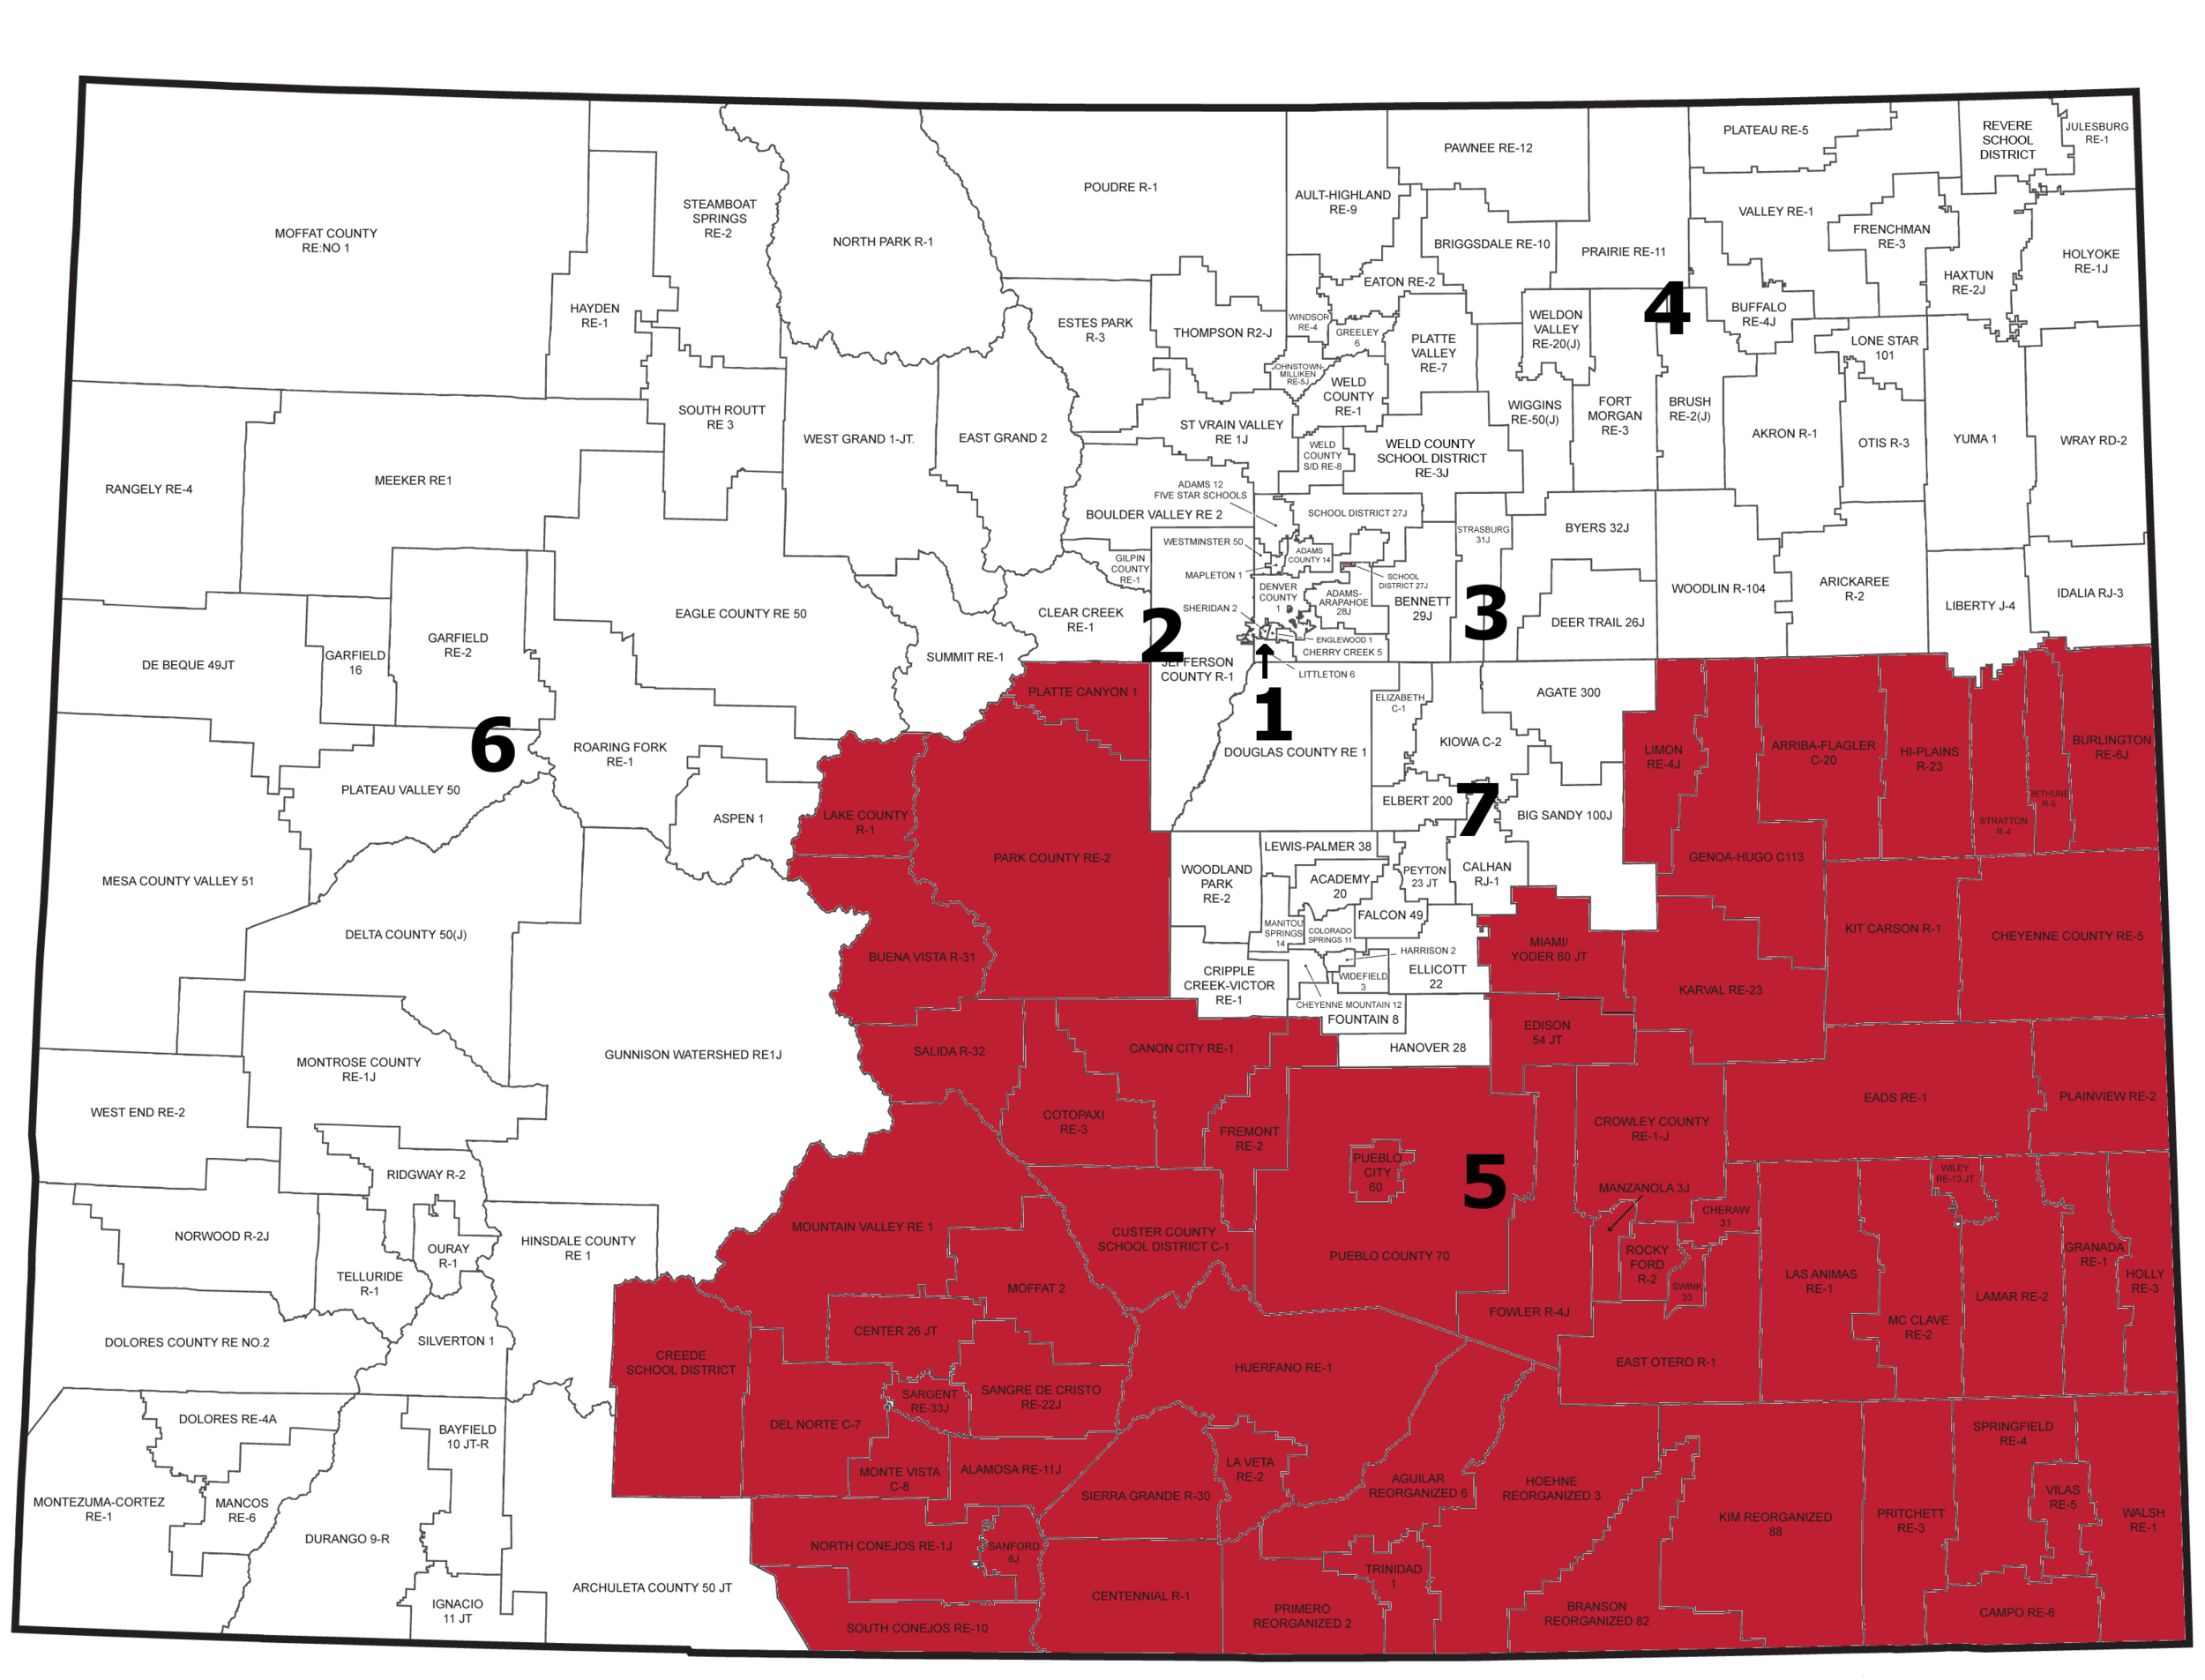 Region 5: Districts in Southern Counties (Baca, Prowers, Kiowa, Cheyenne, Kit Carson, Lincoln, Crowley, Bent, Chaffee, Otero, Las Animas, Huerfano, Pueblo, Costilla, Alamosa, Conejos, Rio Grande, Mineral, Saguache, Custer, Fremont, Park, and Lake counties)